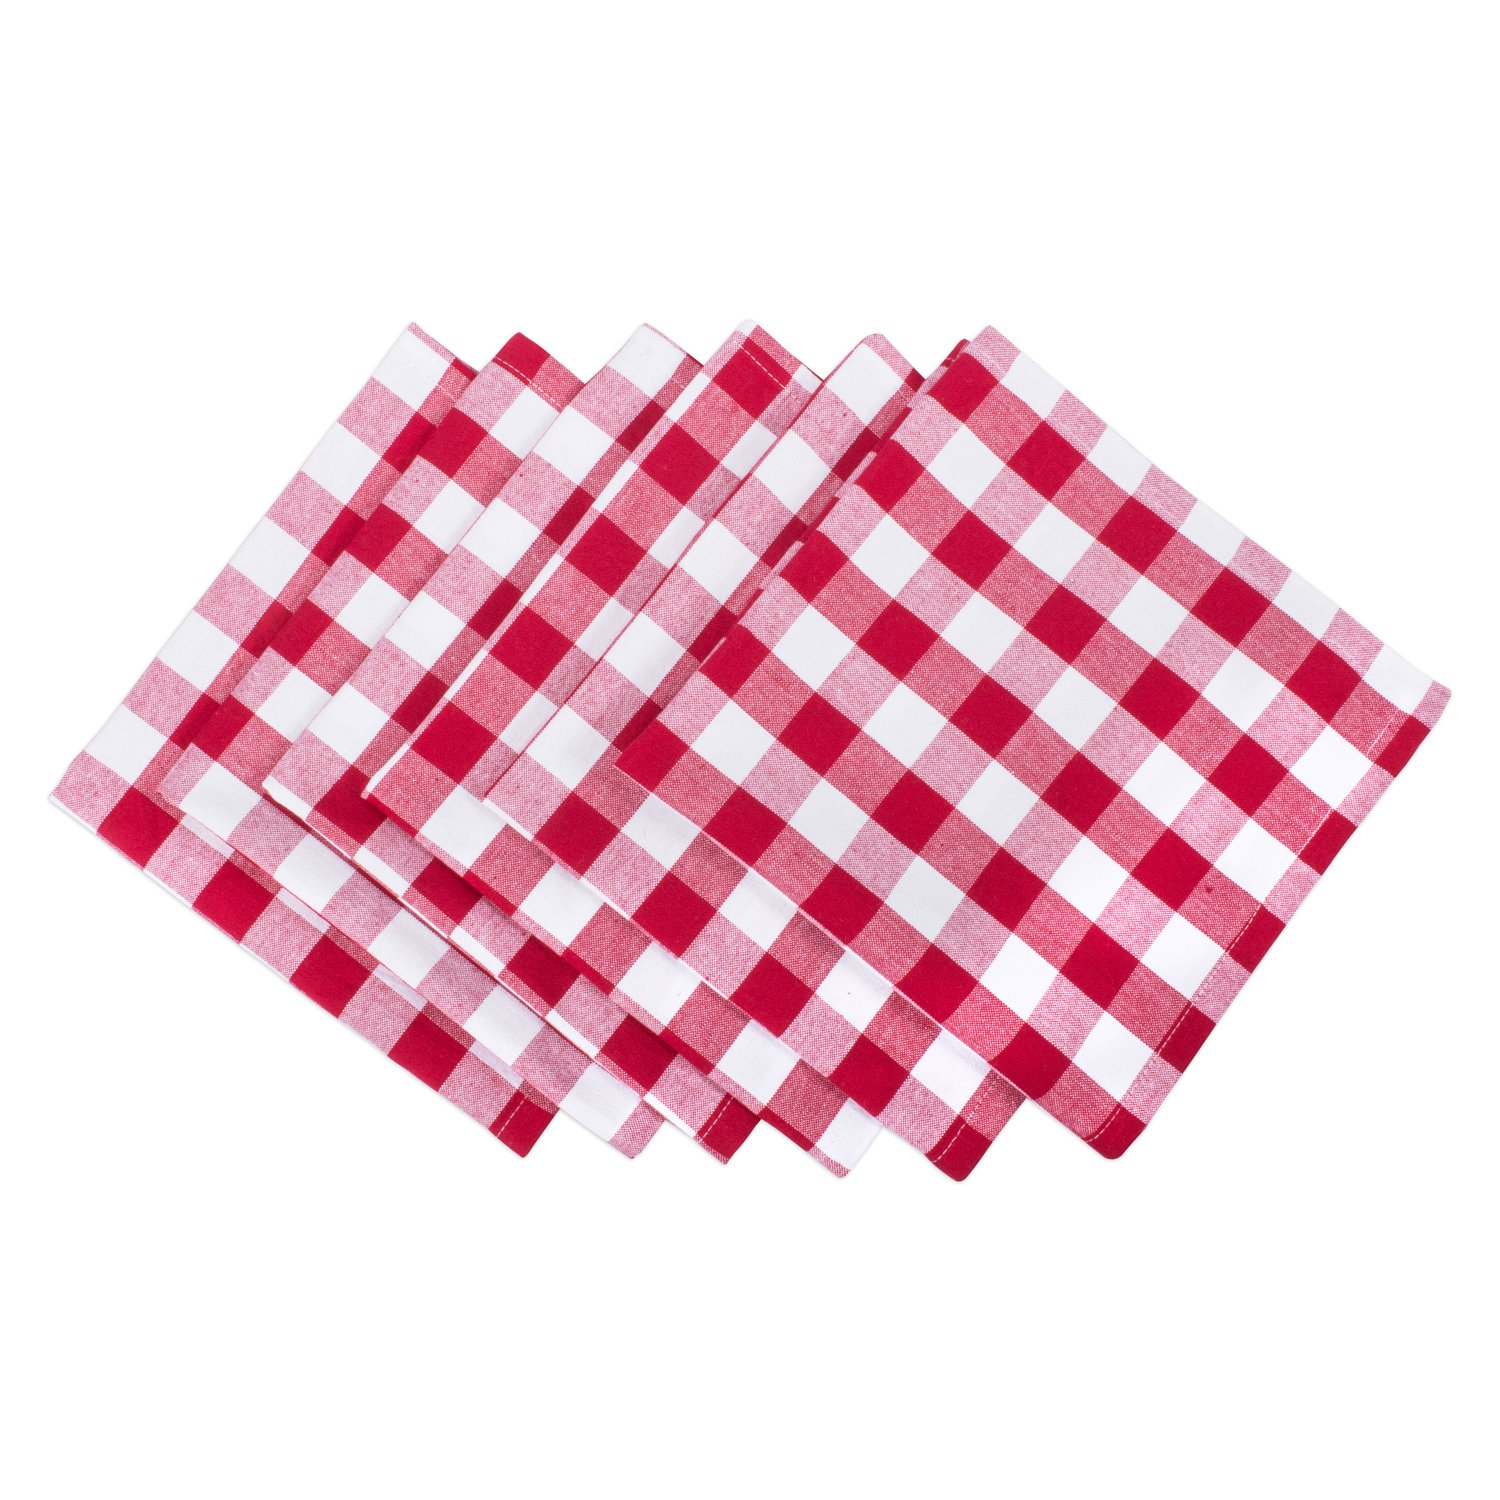 DII 100% Cotton, Oversized Basic Everyday 20x20 Napkin Set of 6, Red & White Check